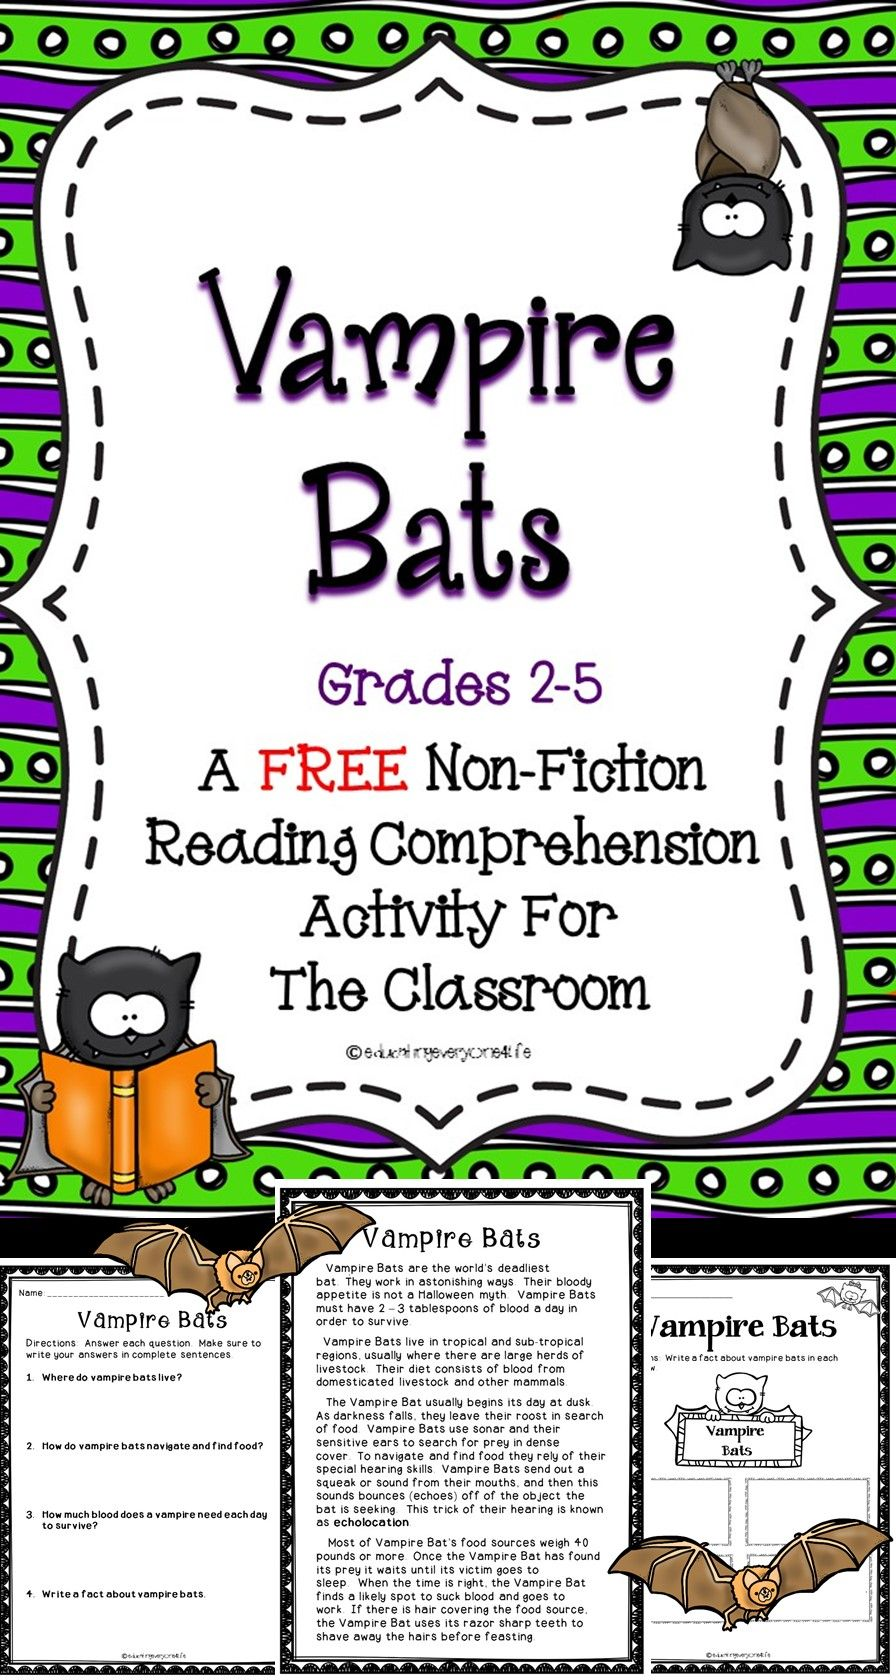 FREE Vampire Bats Reading Comprehension Activity For The Classroom ...